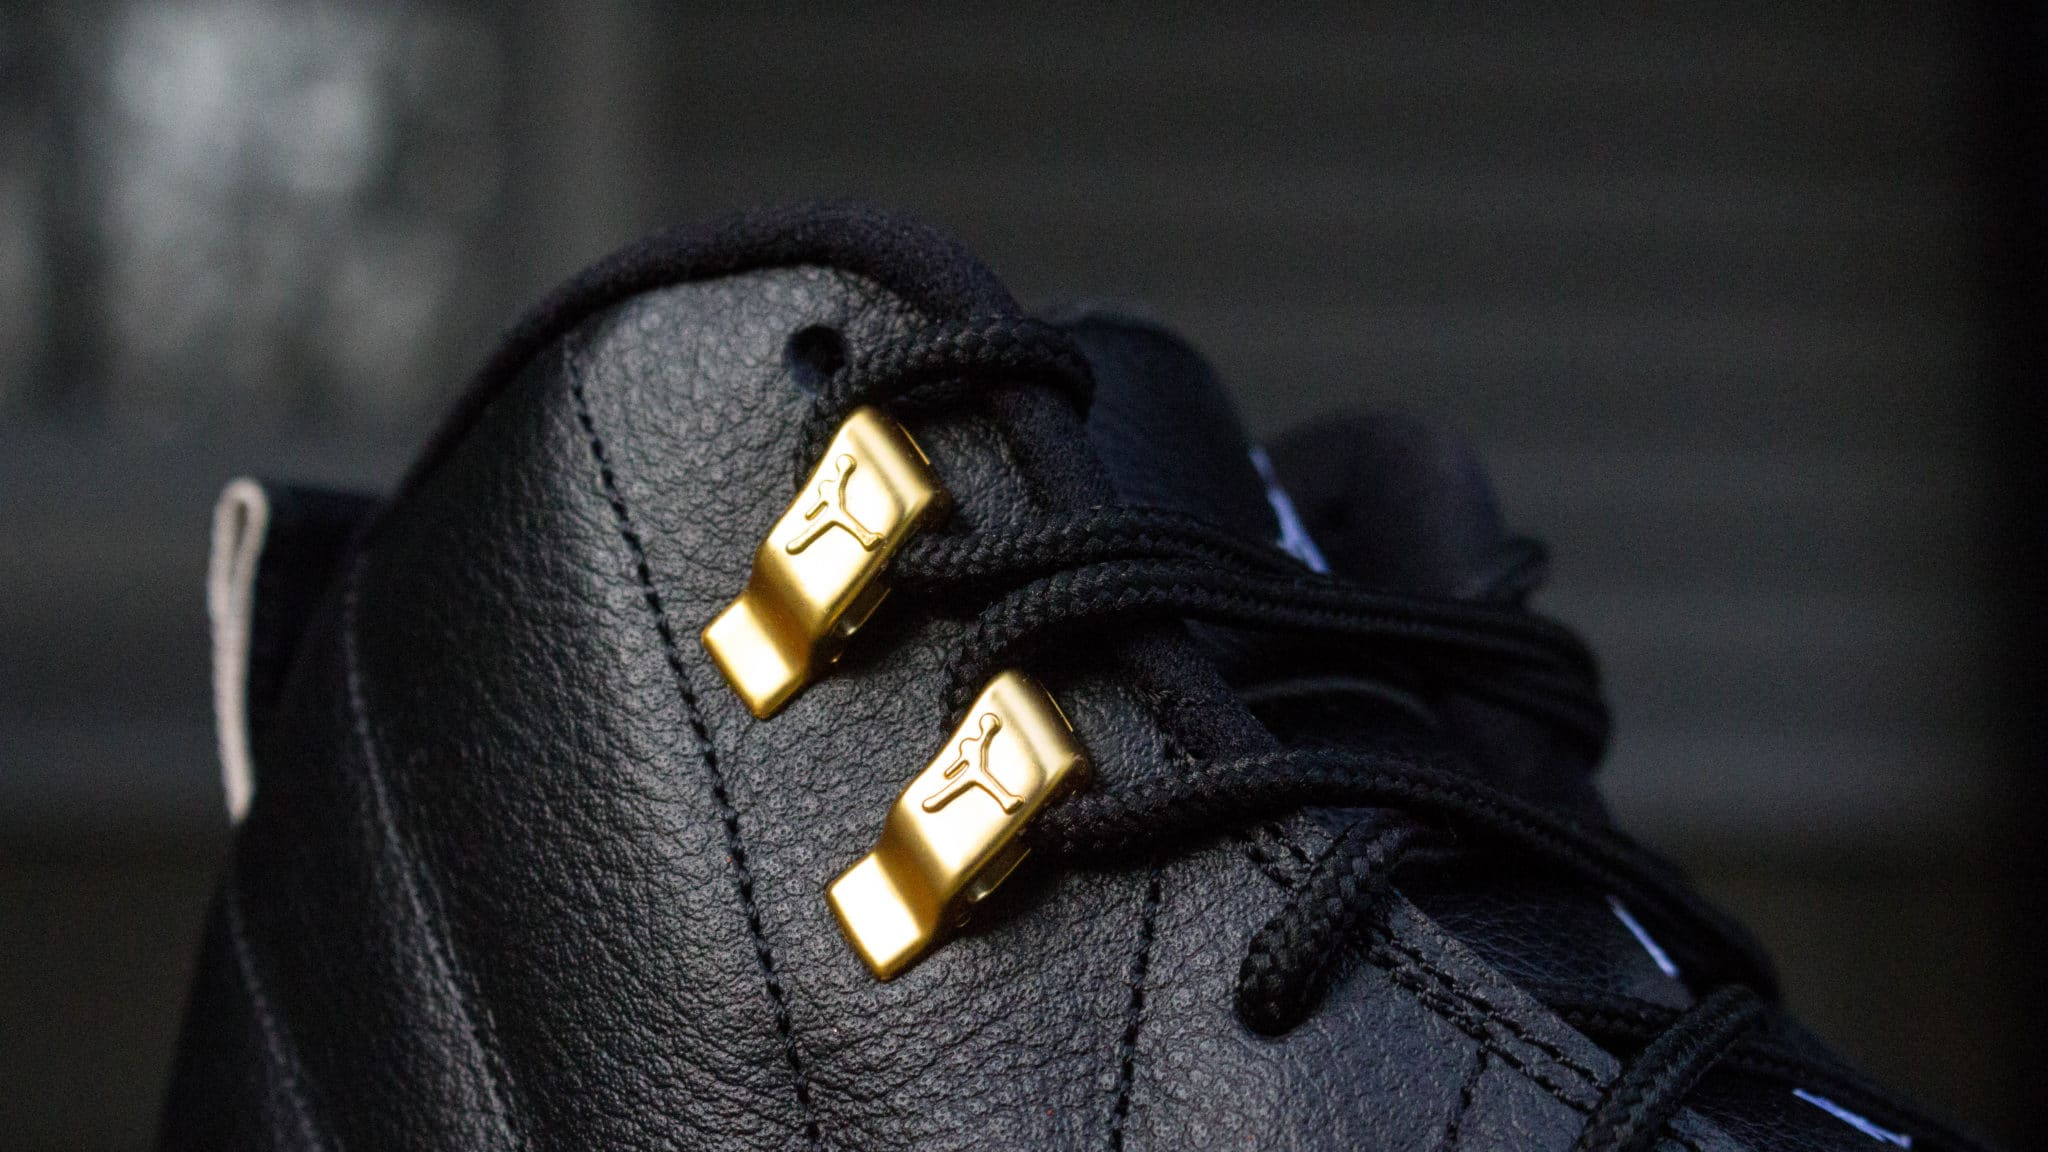 on sale 1d39b 21522 Air Jordan 12 Retro 'The Master' | Detailed Look and Review ...